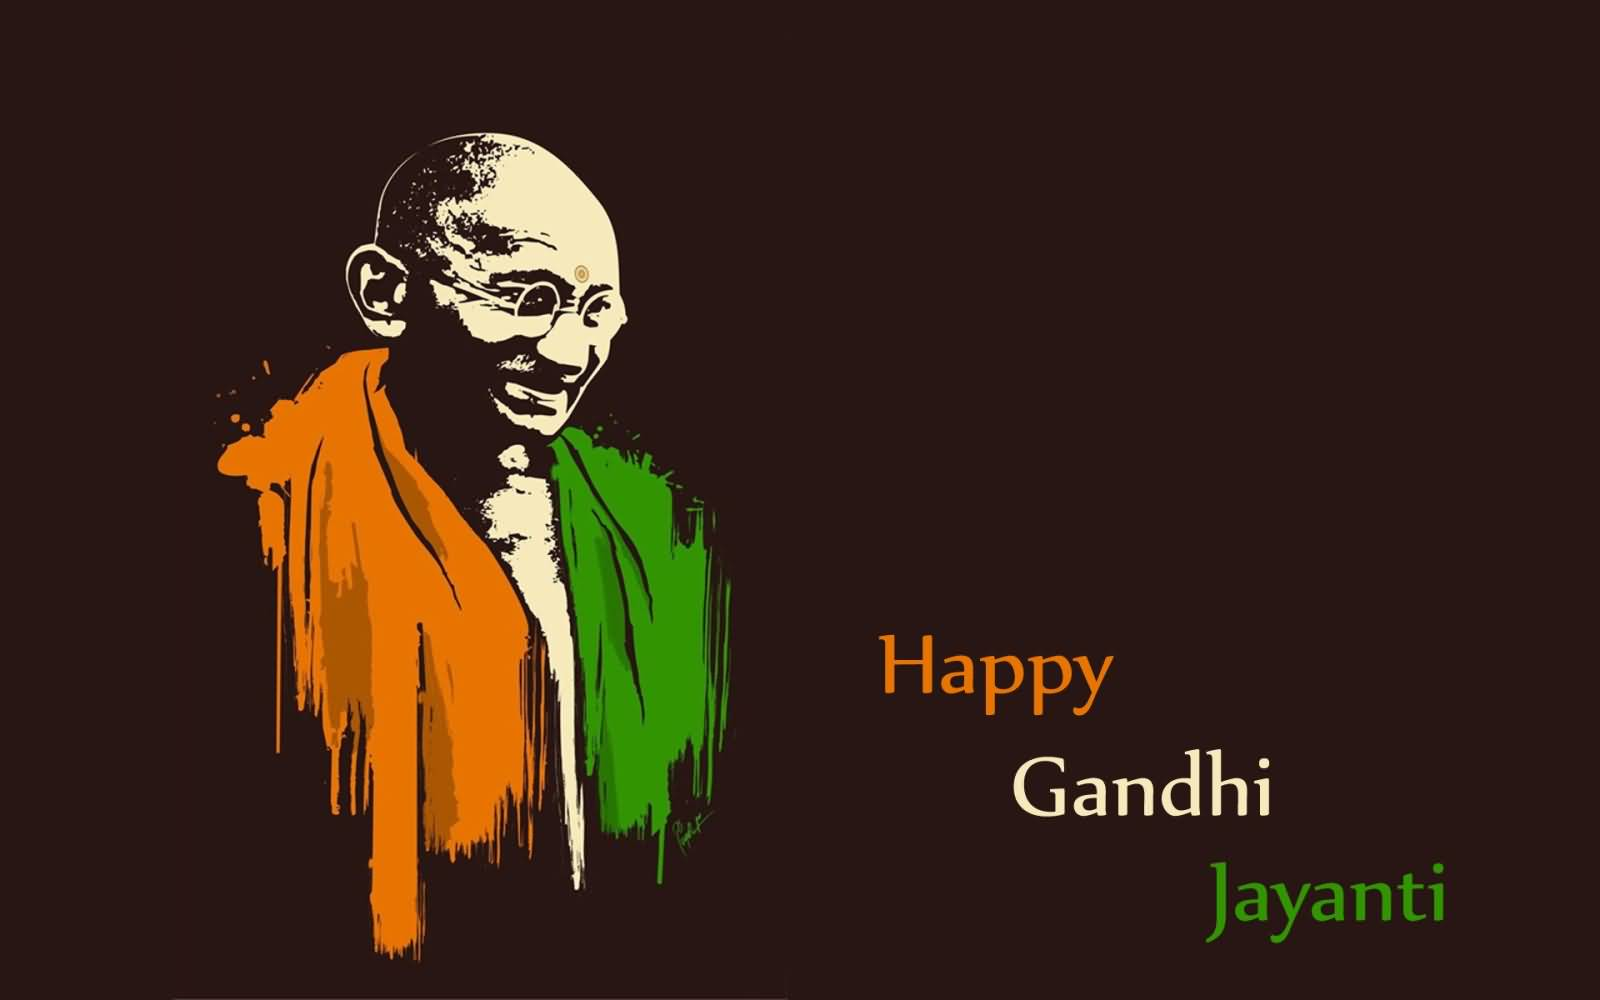 Gandhi Ji With Indian Flag Hd: 60+ Best Gandhi Jayanti Wishes Pictures And Images